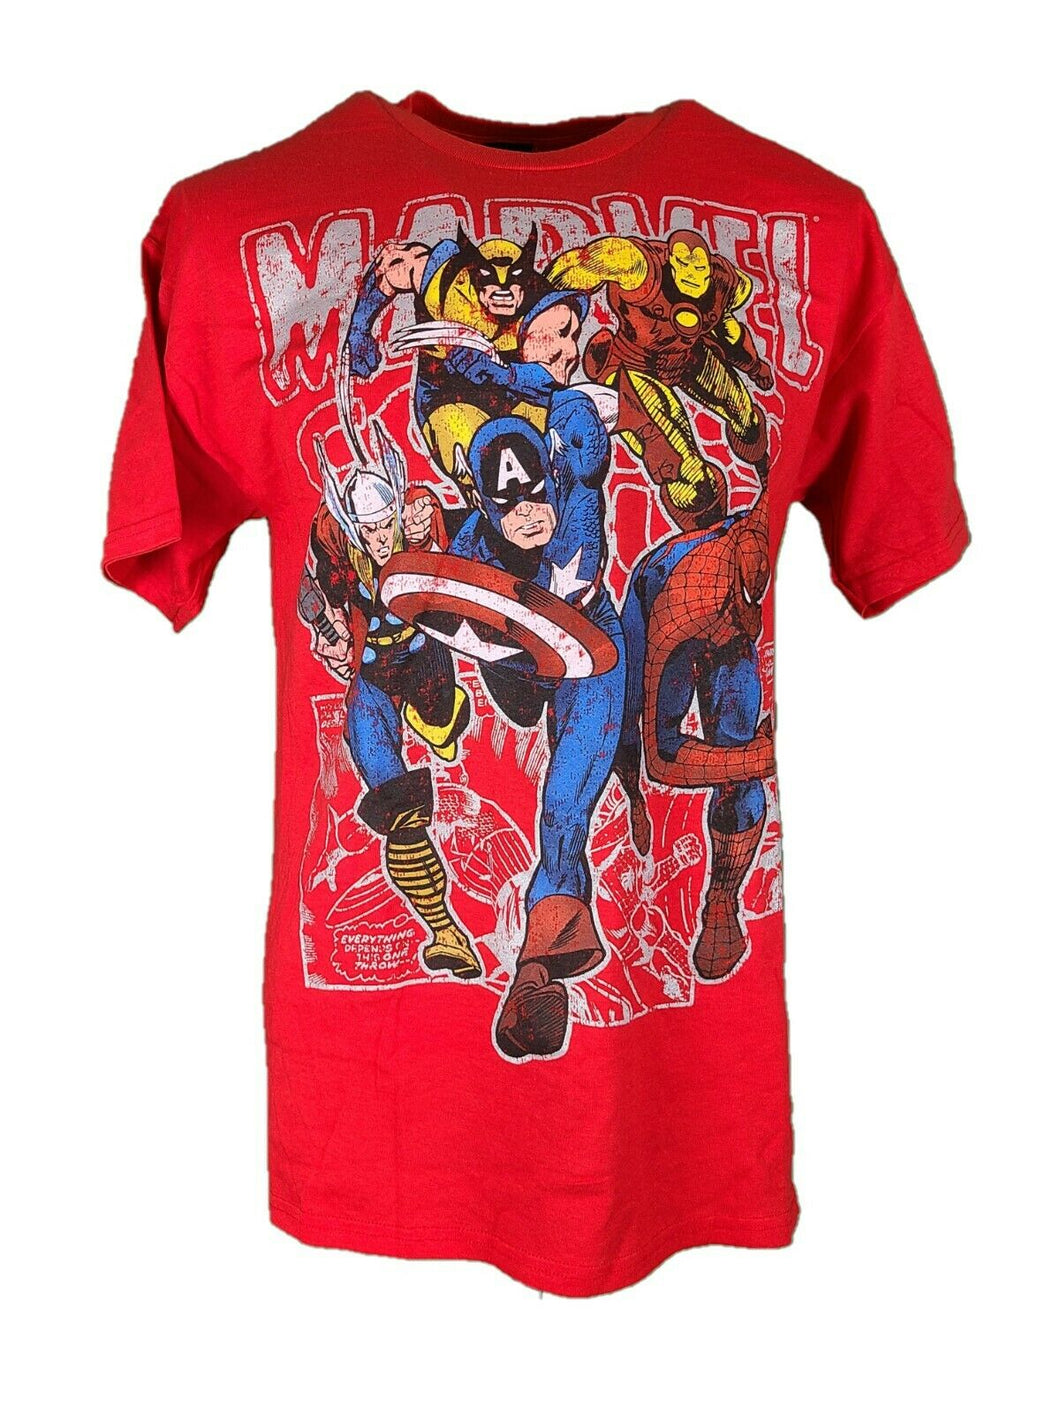 New Marvel Comics T Shirt Size Large Color Red